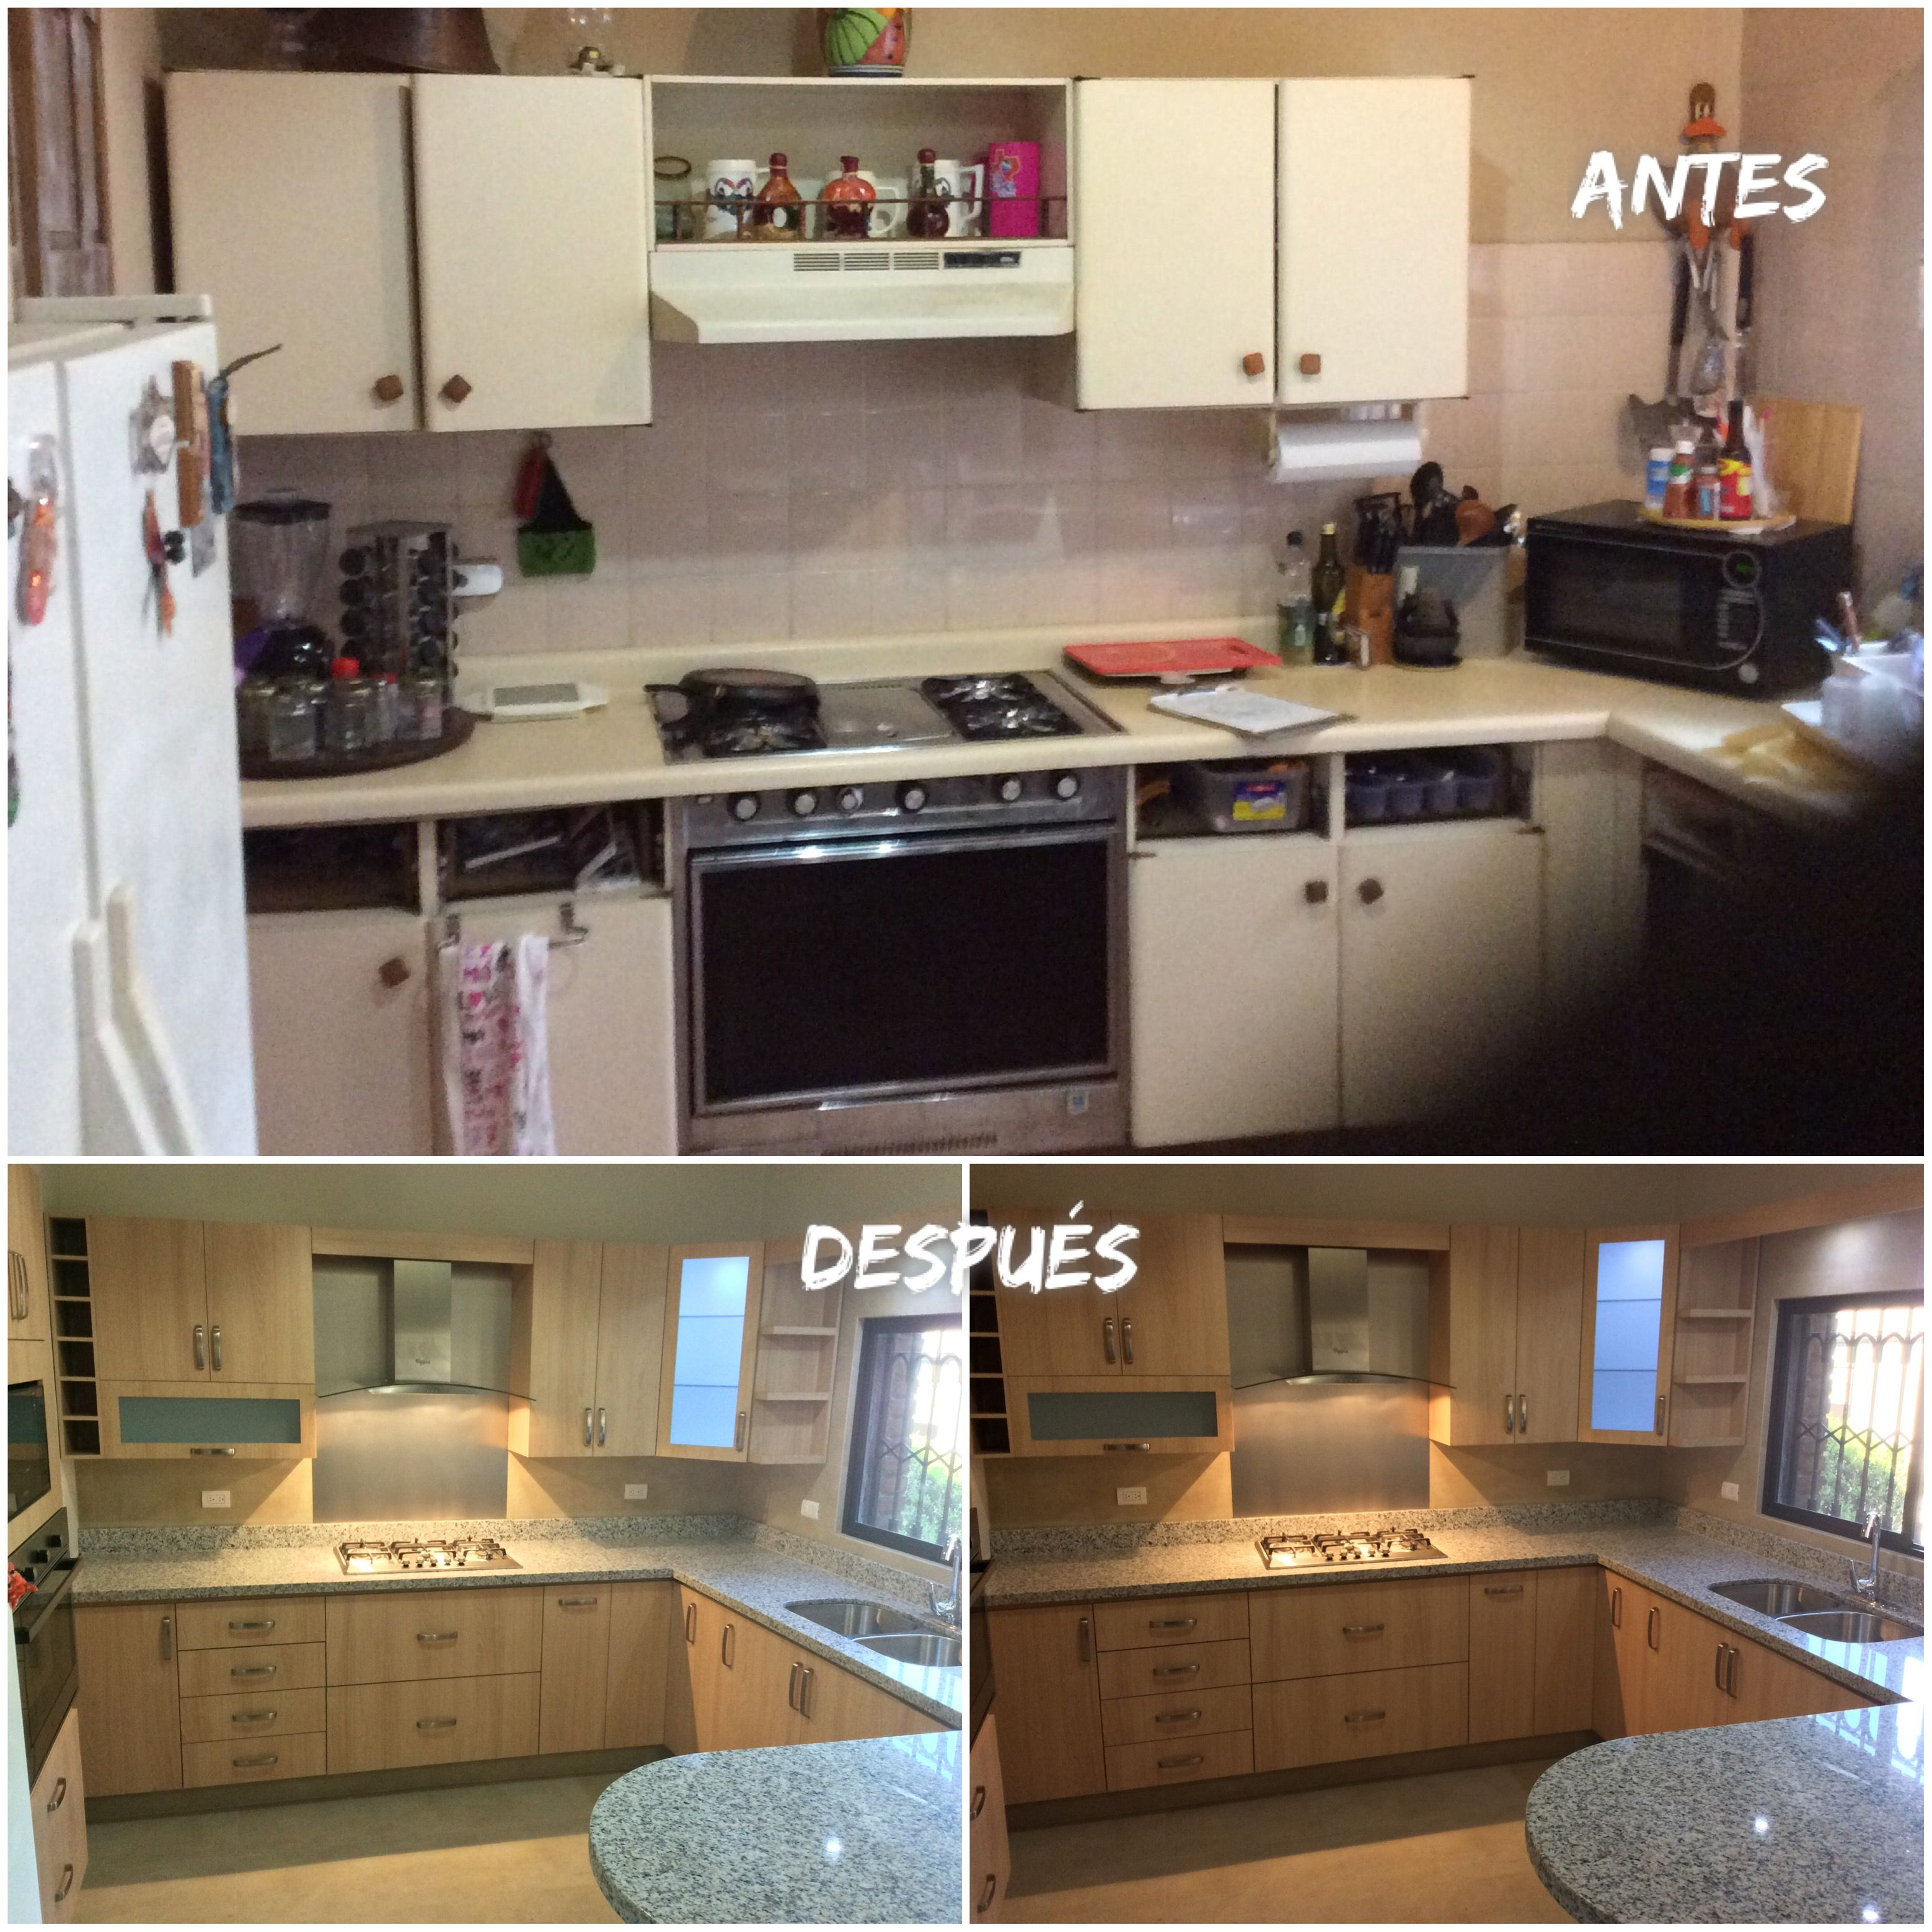 Antes Y Despues Before And After Kitchen Kitchen Cabinets Decor